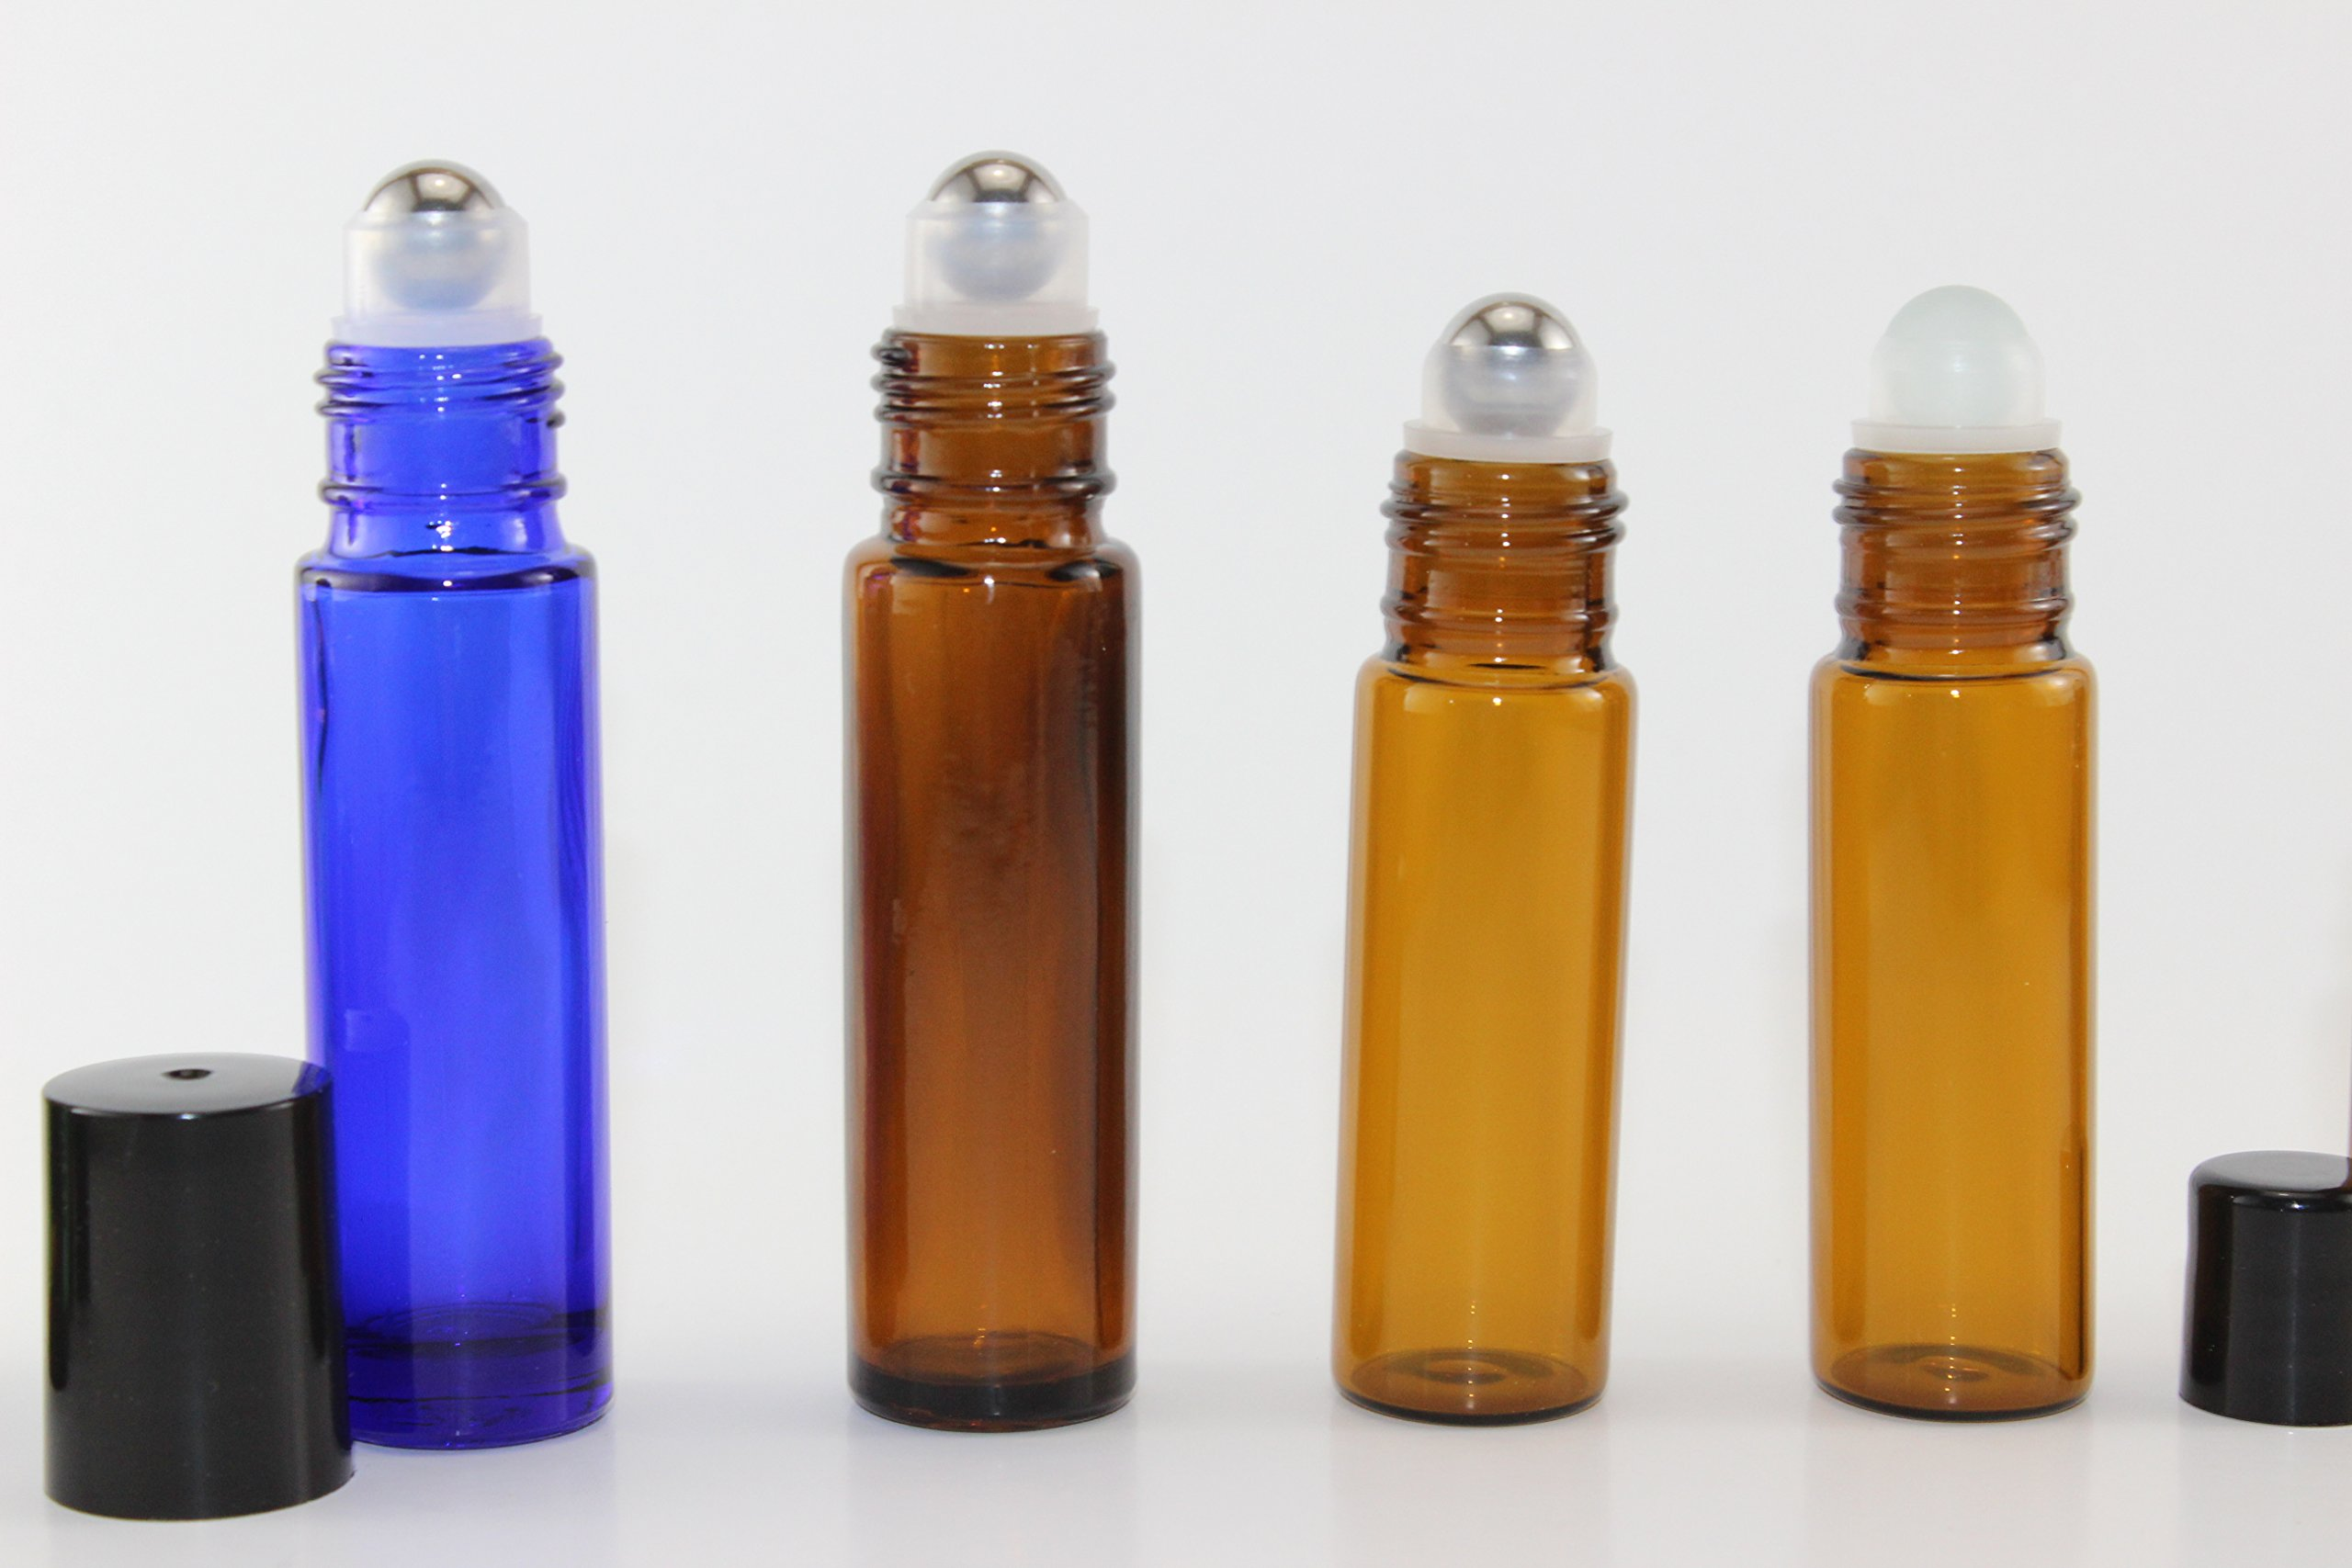 144-10ml Amber Glass Roll On Thick Bottles (144) with Stainless Steel Roller Balls - Refillable Aromatherapy Essential Oil Roll On (144)